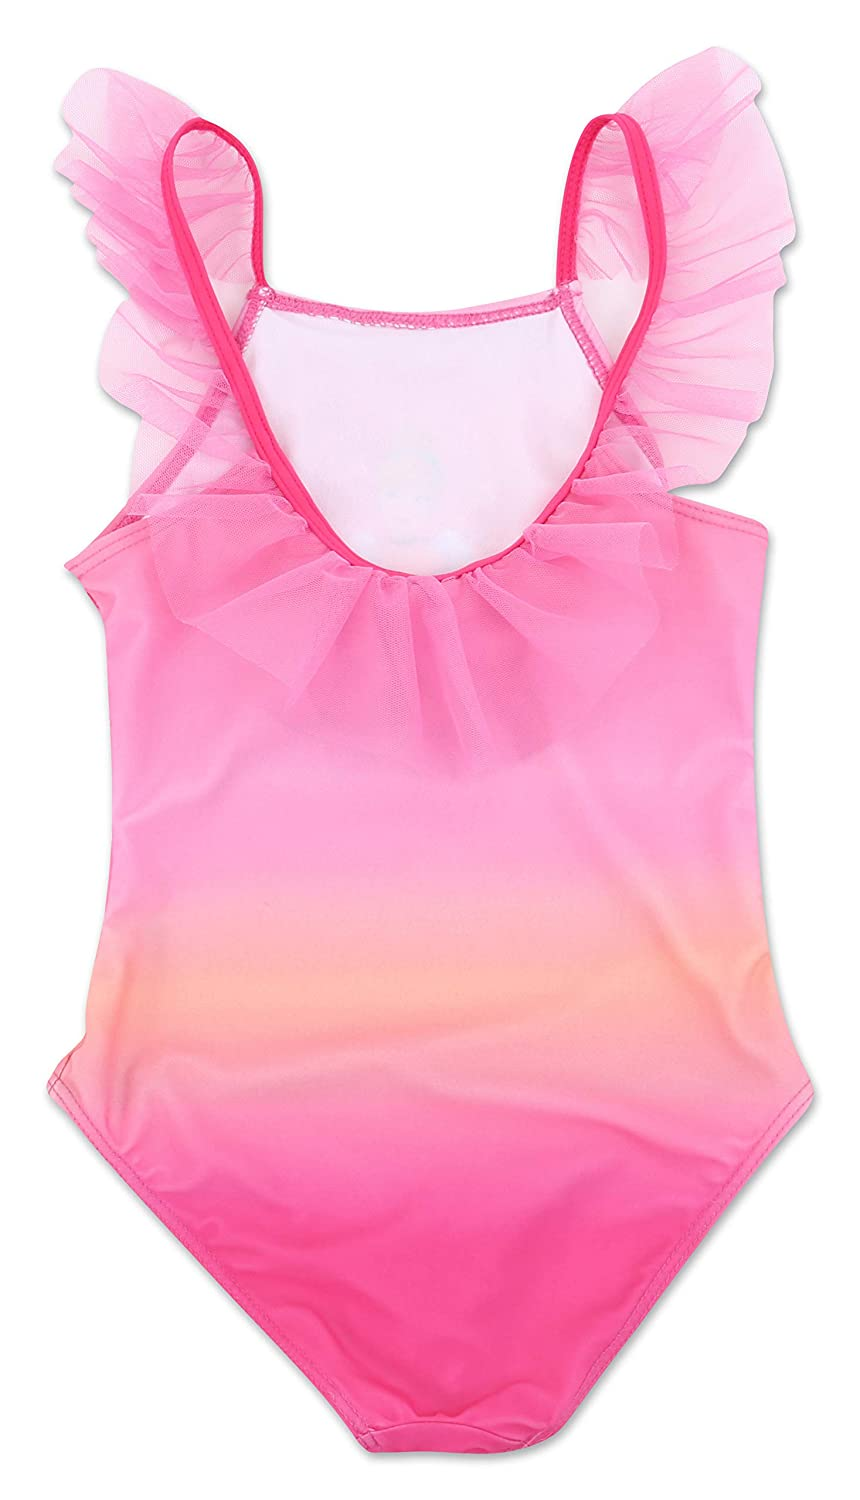 Dreamwave Girls Authentic Character One Piece Swimsuit UPF 50